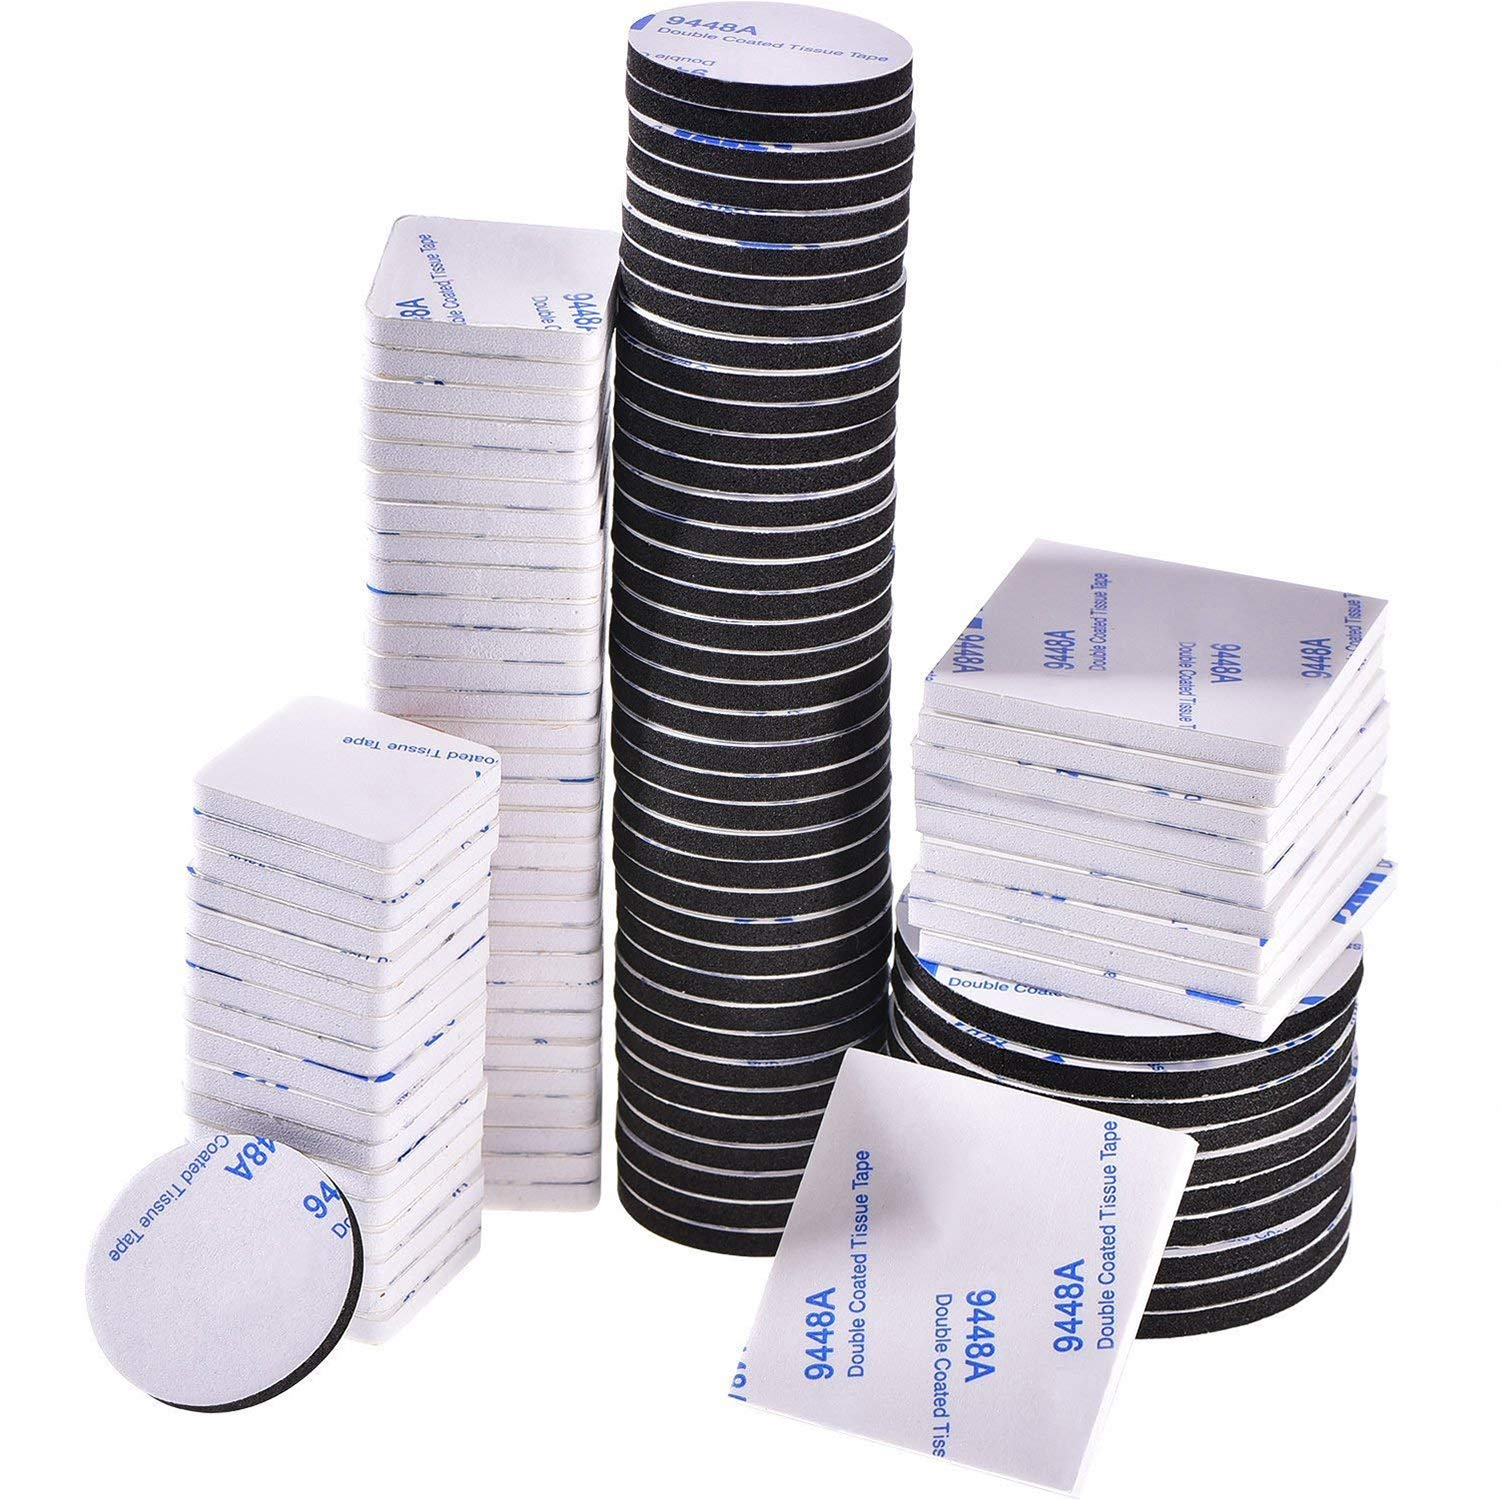 100 Pieces Double Sided Adhesive Foam Pads Strong Adhesive Mounting Tape, Square and Round, Black and White Bememo